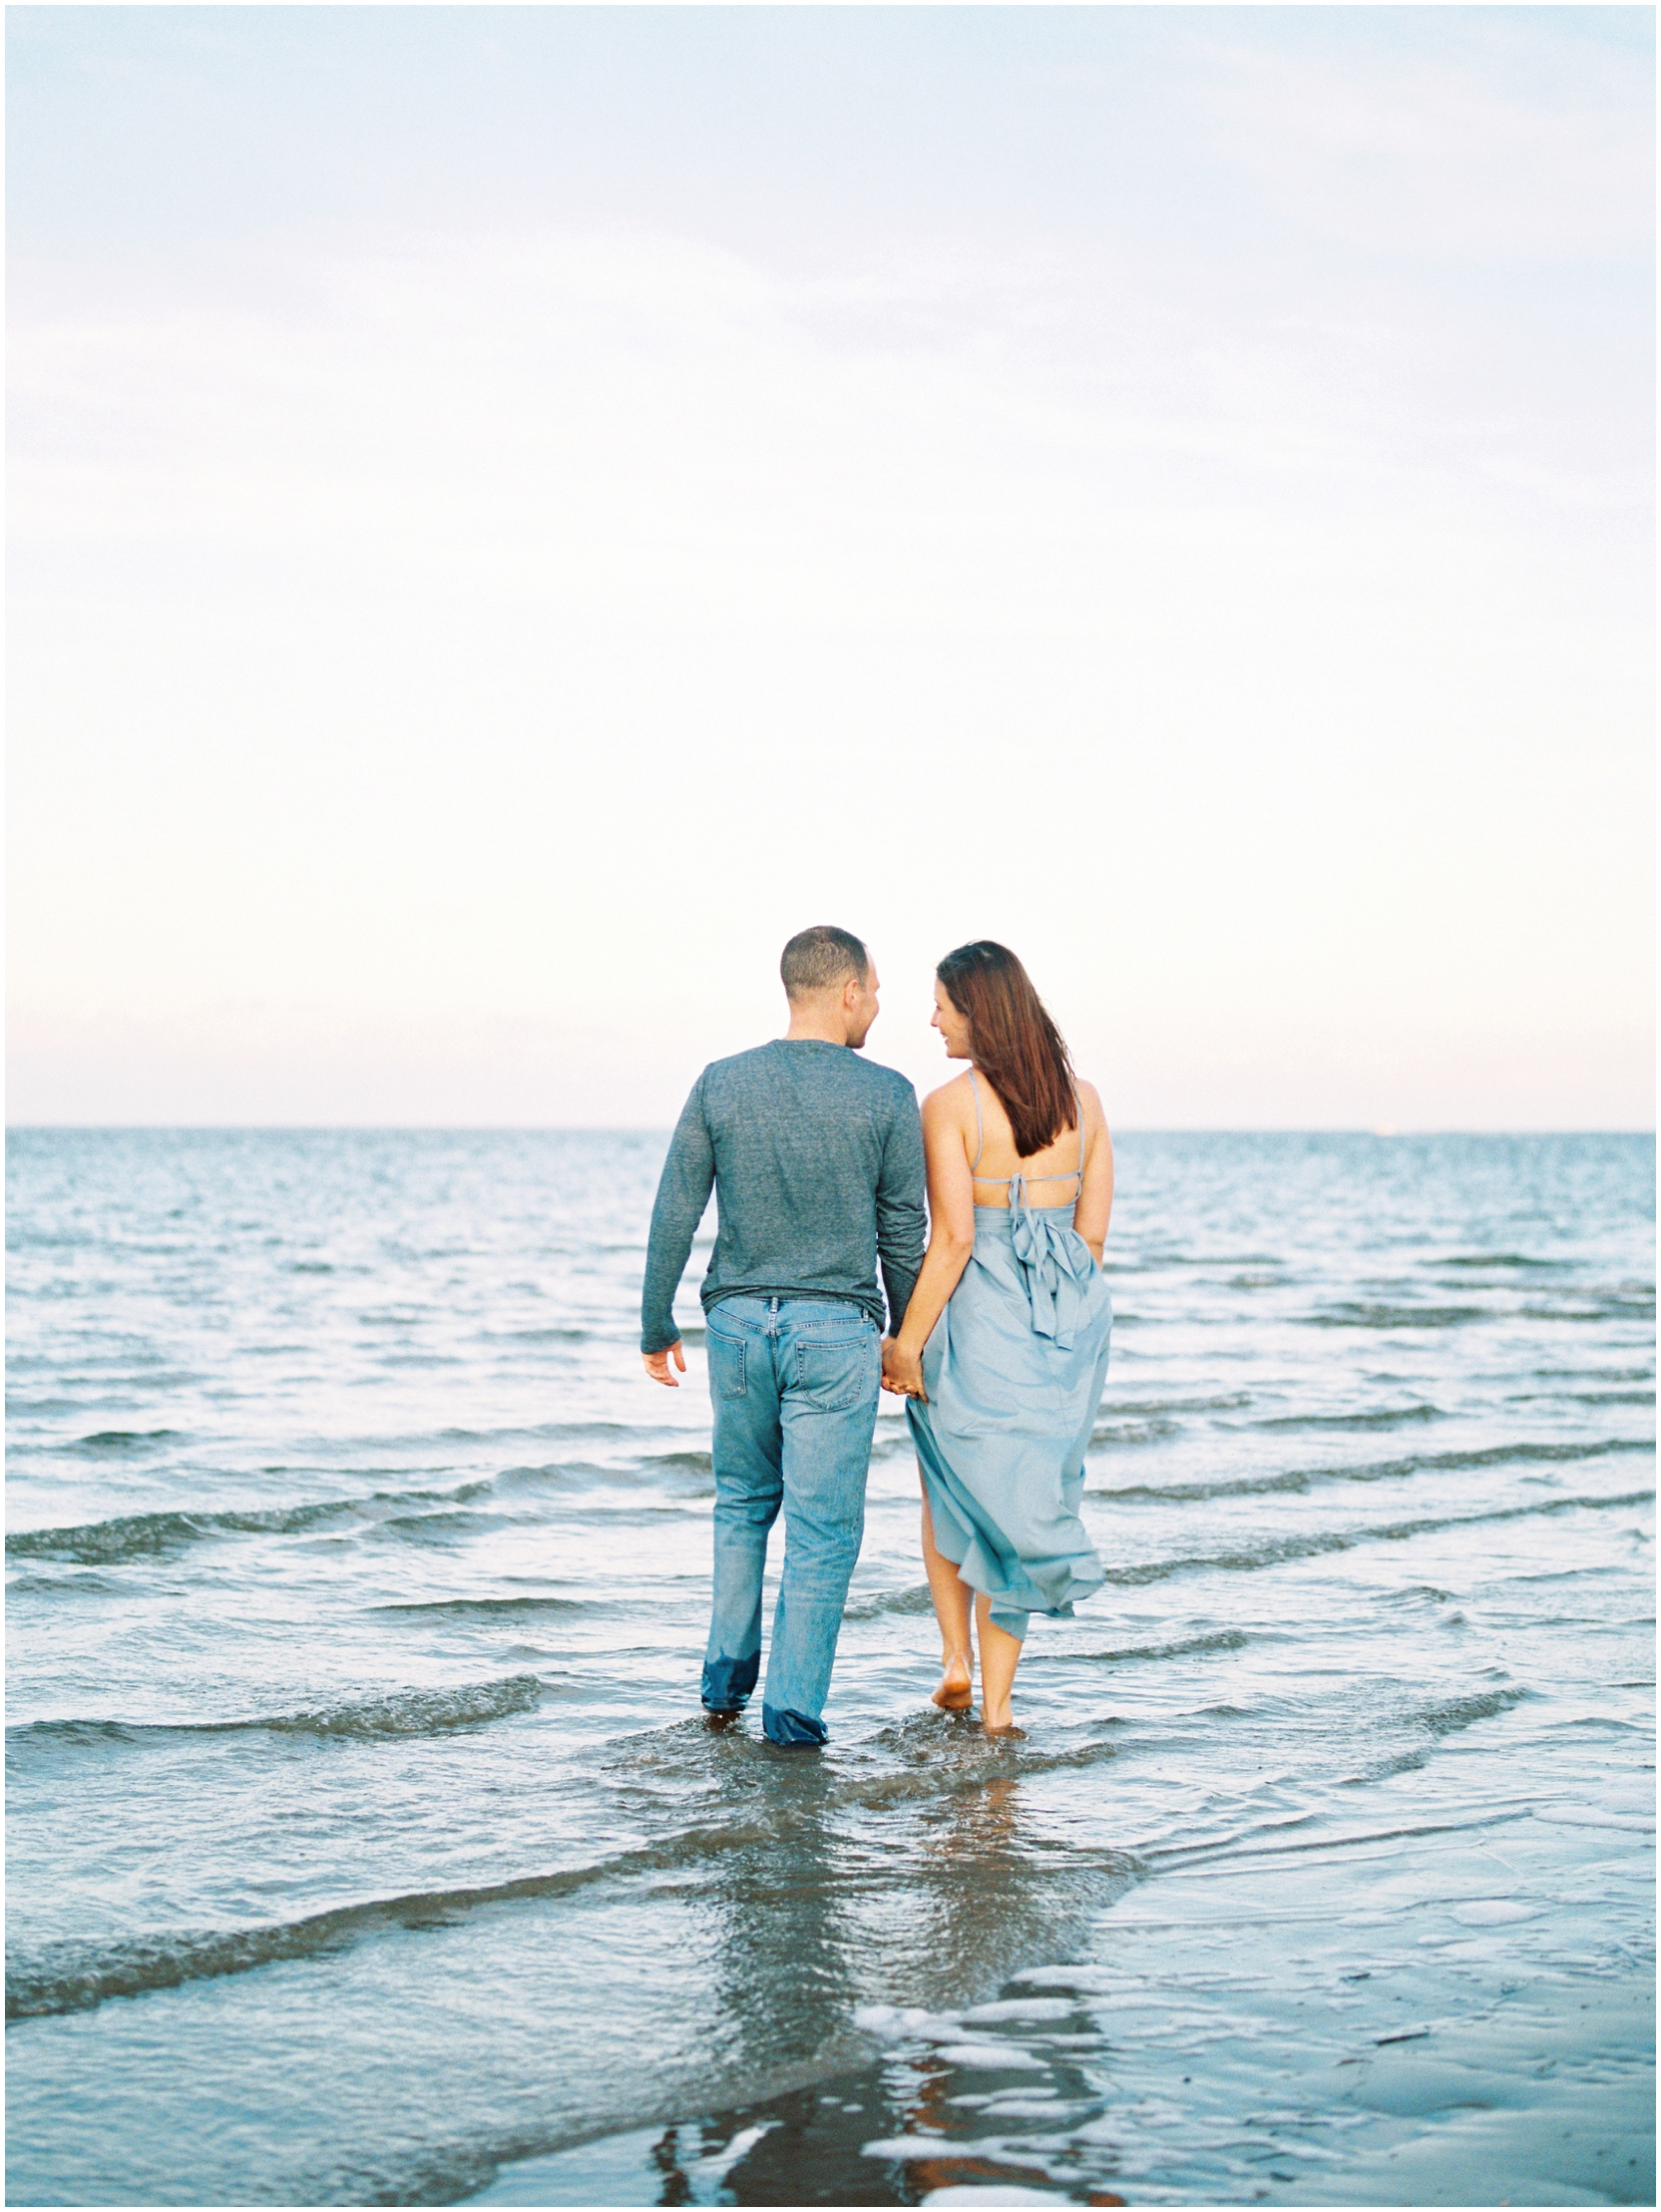 Lisa Silva Photography -Engagement Session at Big Talbot Island- Jacksonville and North East Florida Fine Art Film Photographer_0053.jpg